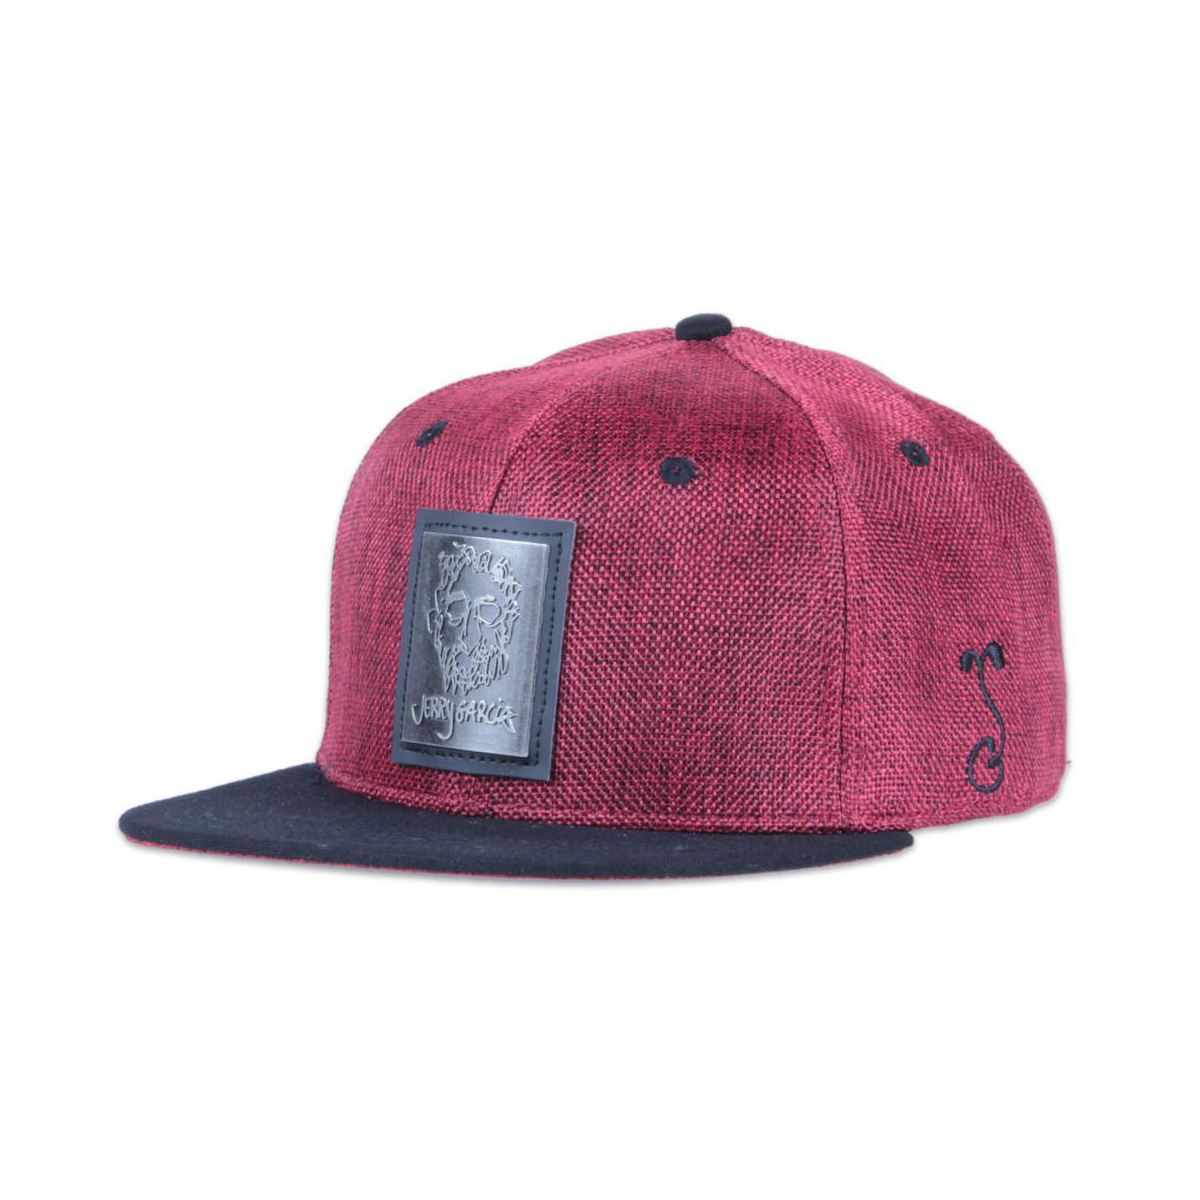 Grassroots California Metal Badge Face Red Snapback